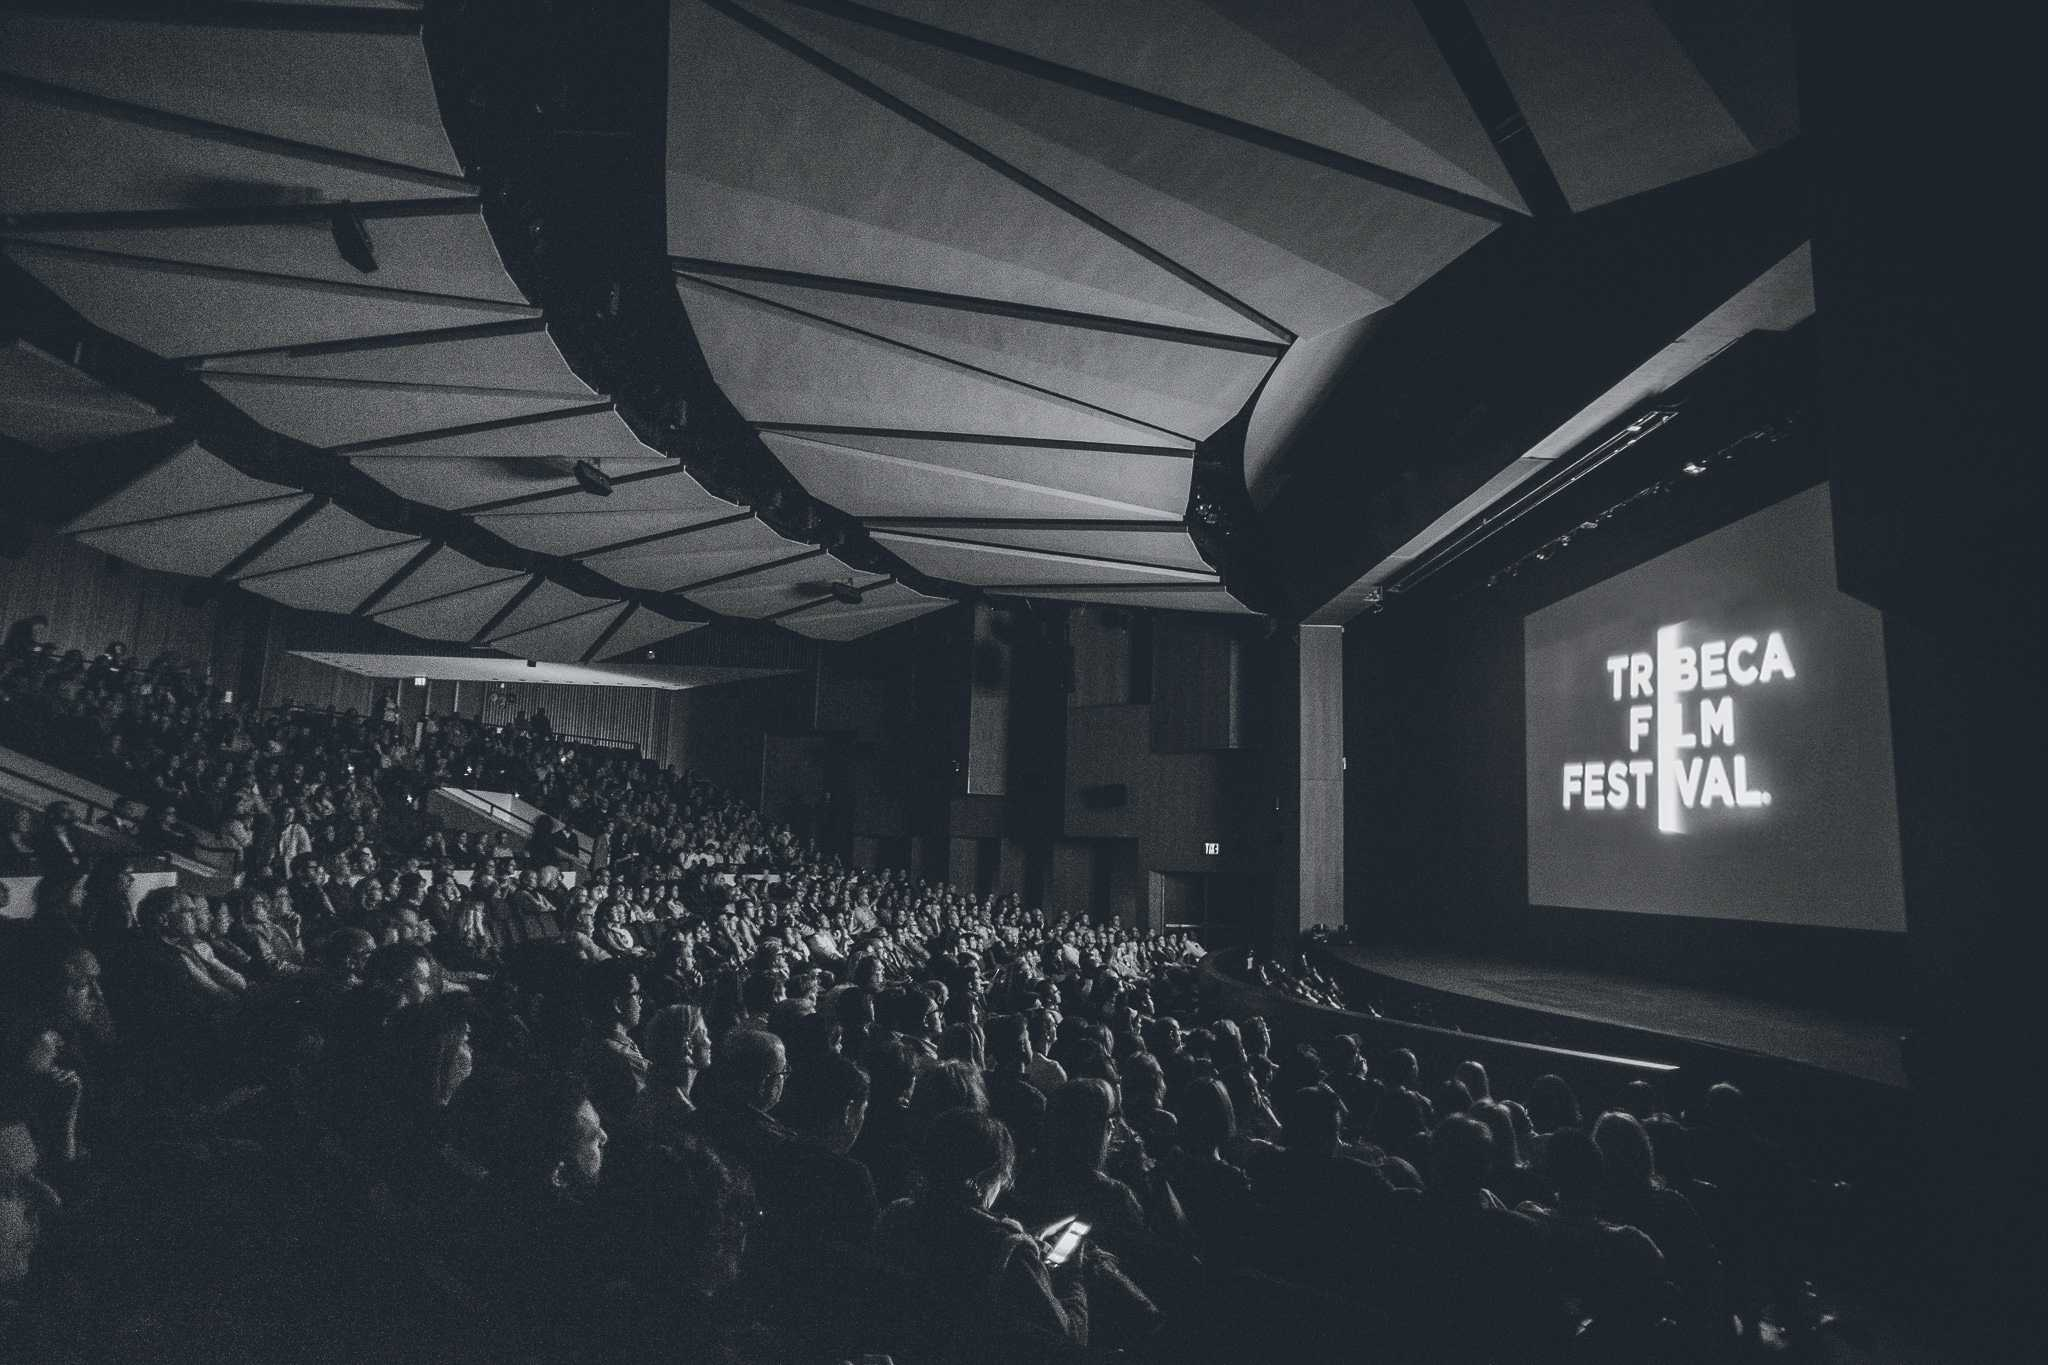 Known most for the new and unique works that are introduced, the Tribeca Film Festival will run from April 19 to April 30, encapsulating a wide range of events from TV show screenings to interviews with stars and directors.